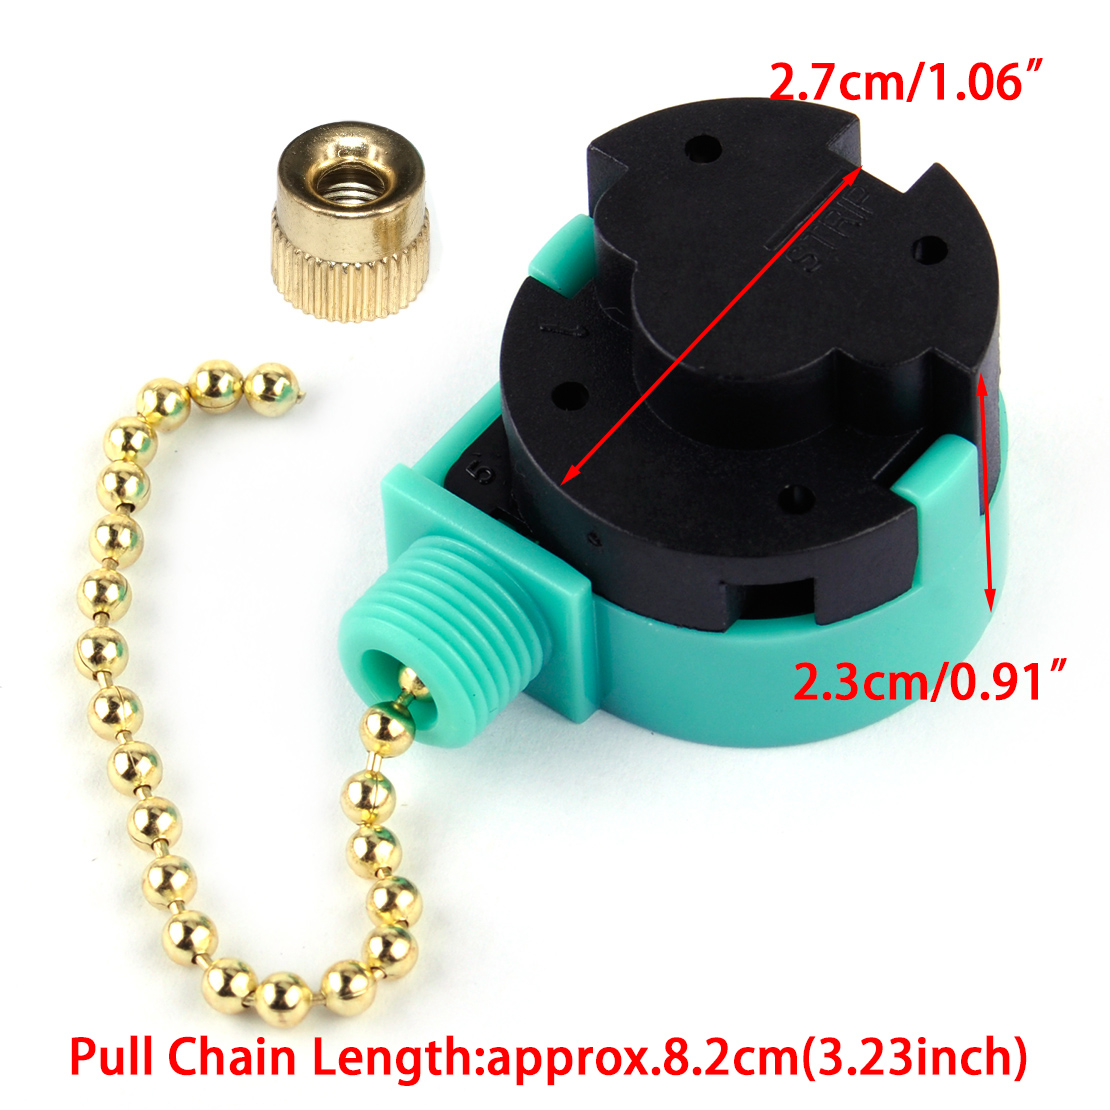 3 Speed Pull Chain Control Switch Replacement Fit For Zing Ear Ze 208s6 Wiring Diagram Ceiling Fan 4 Easy Installation